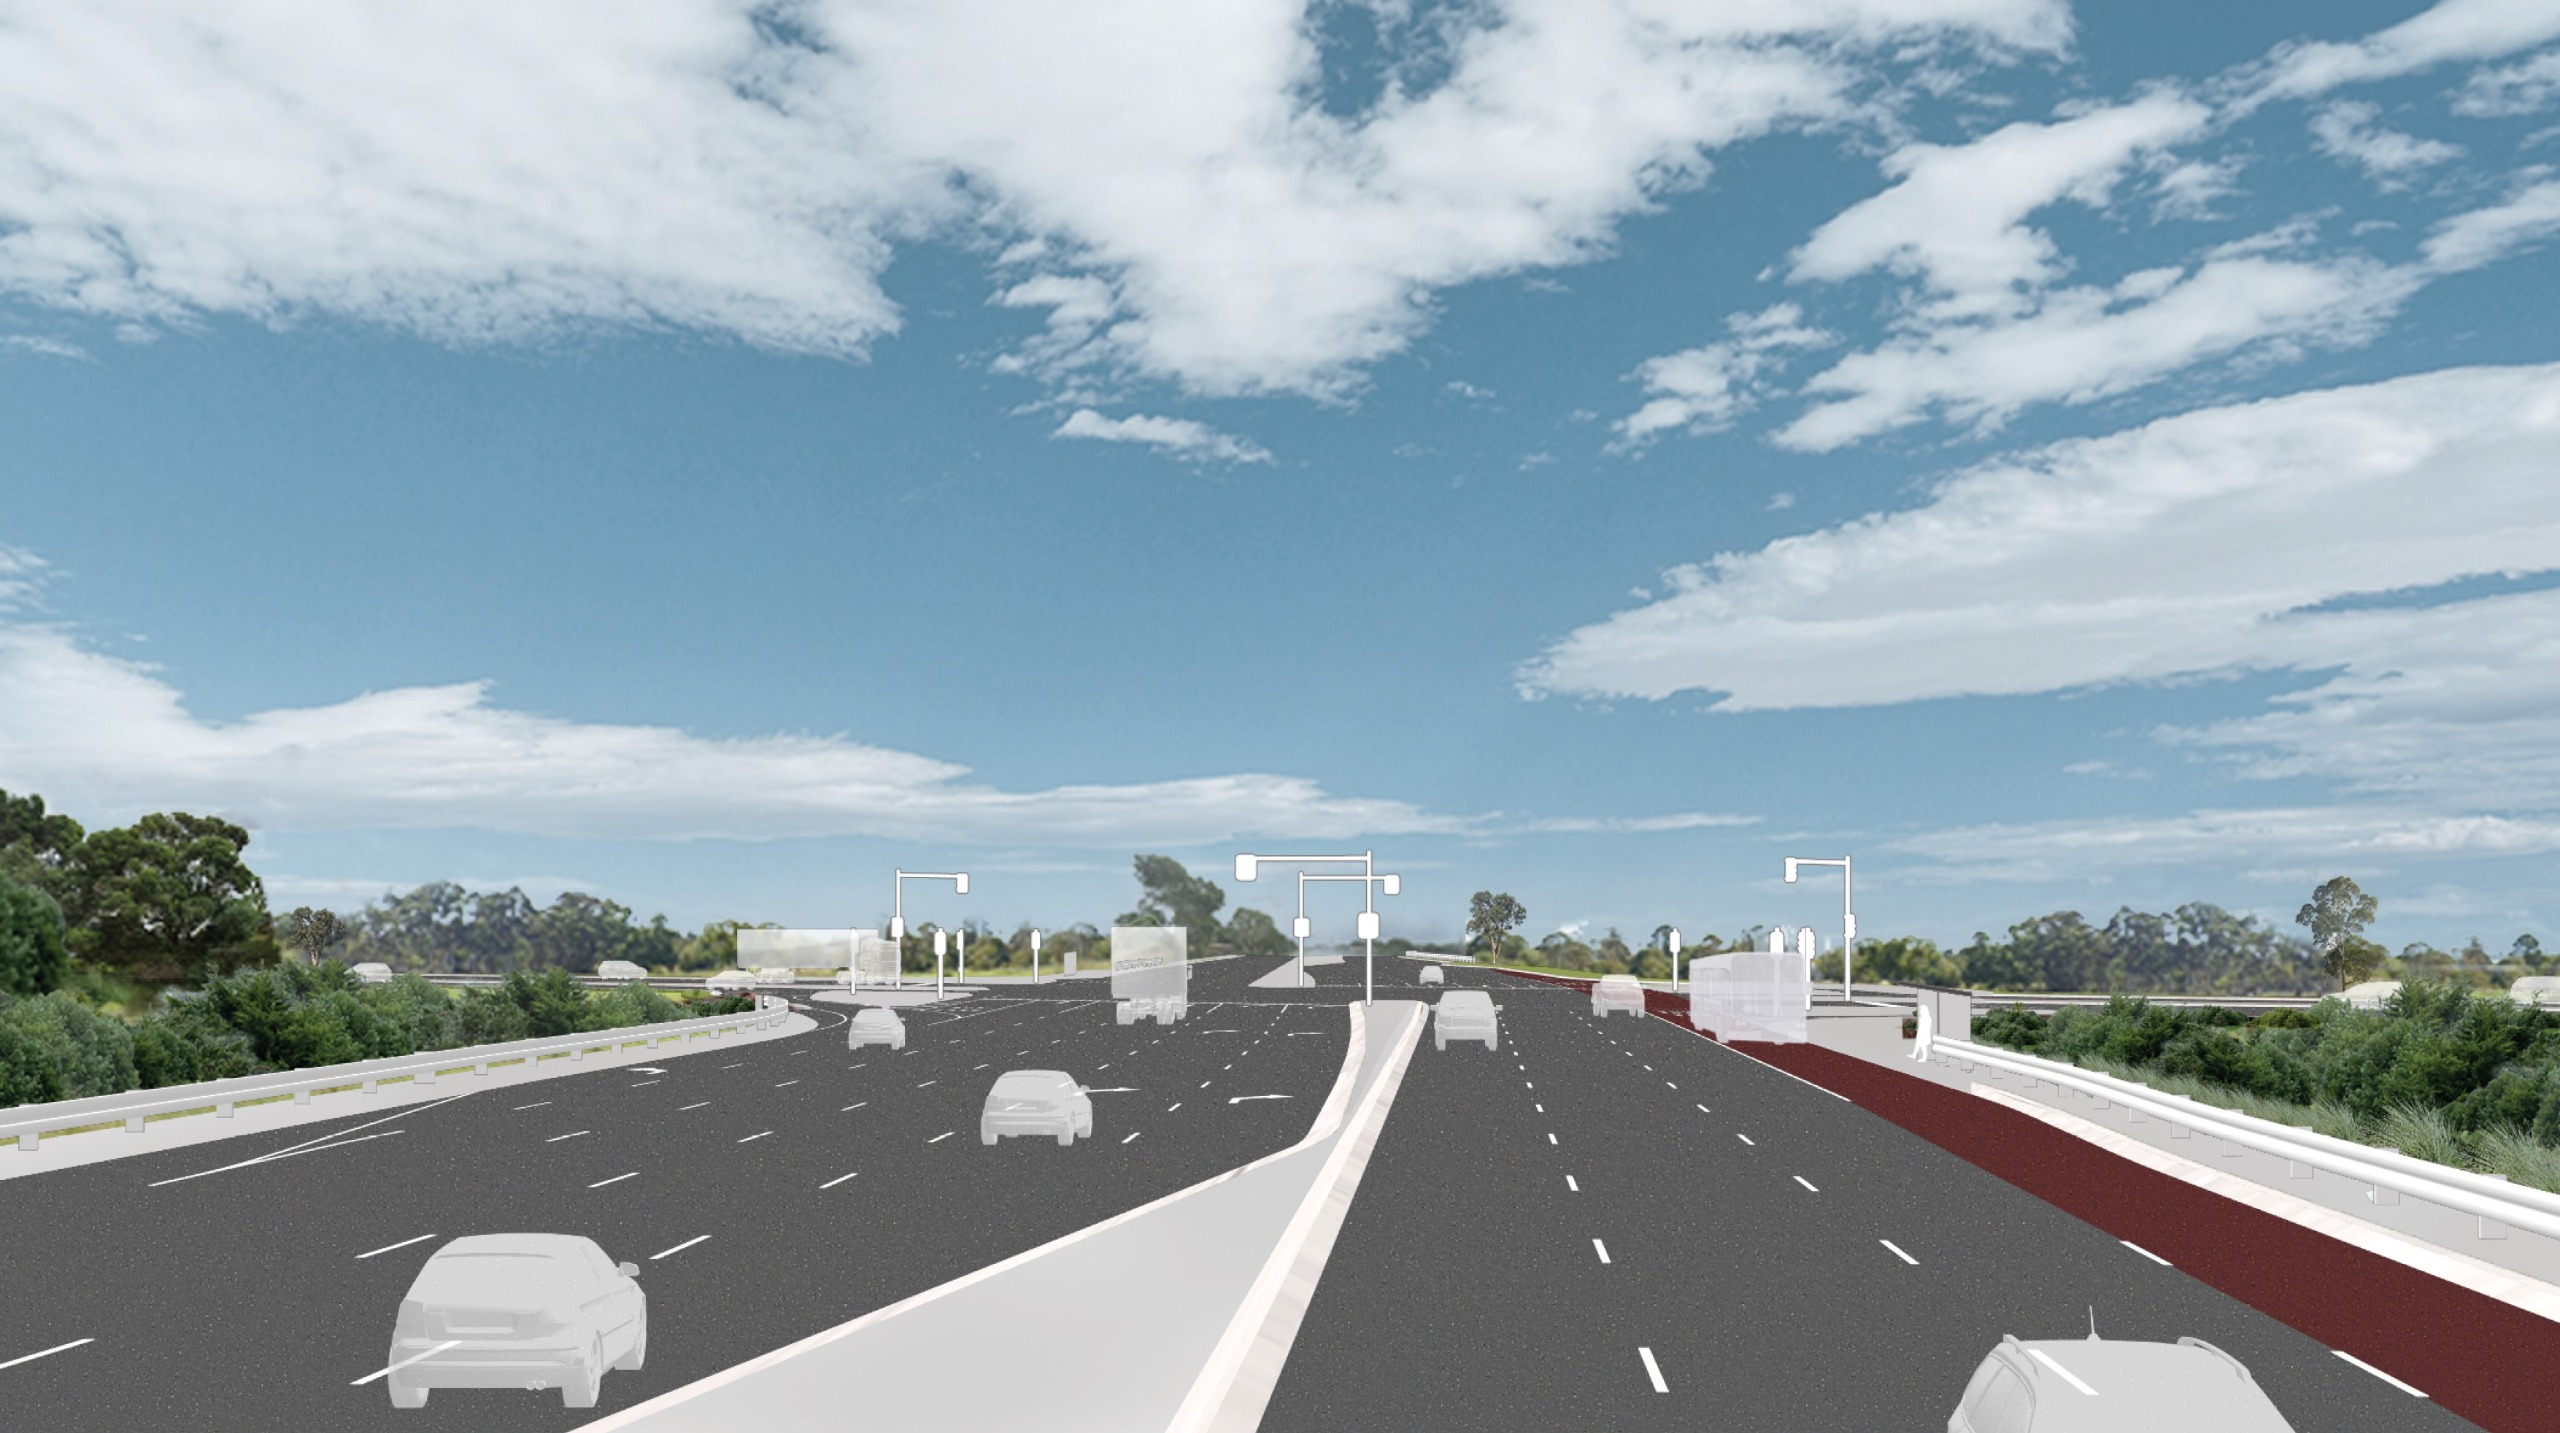 Artist's impression of cars driving through the Cranbourne-Frankston Road intersection 15 years after project completion